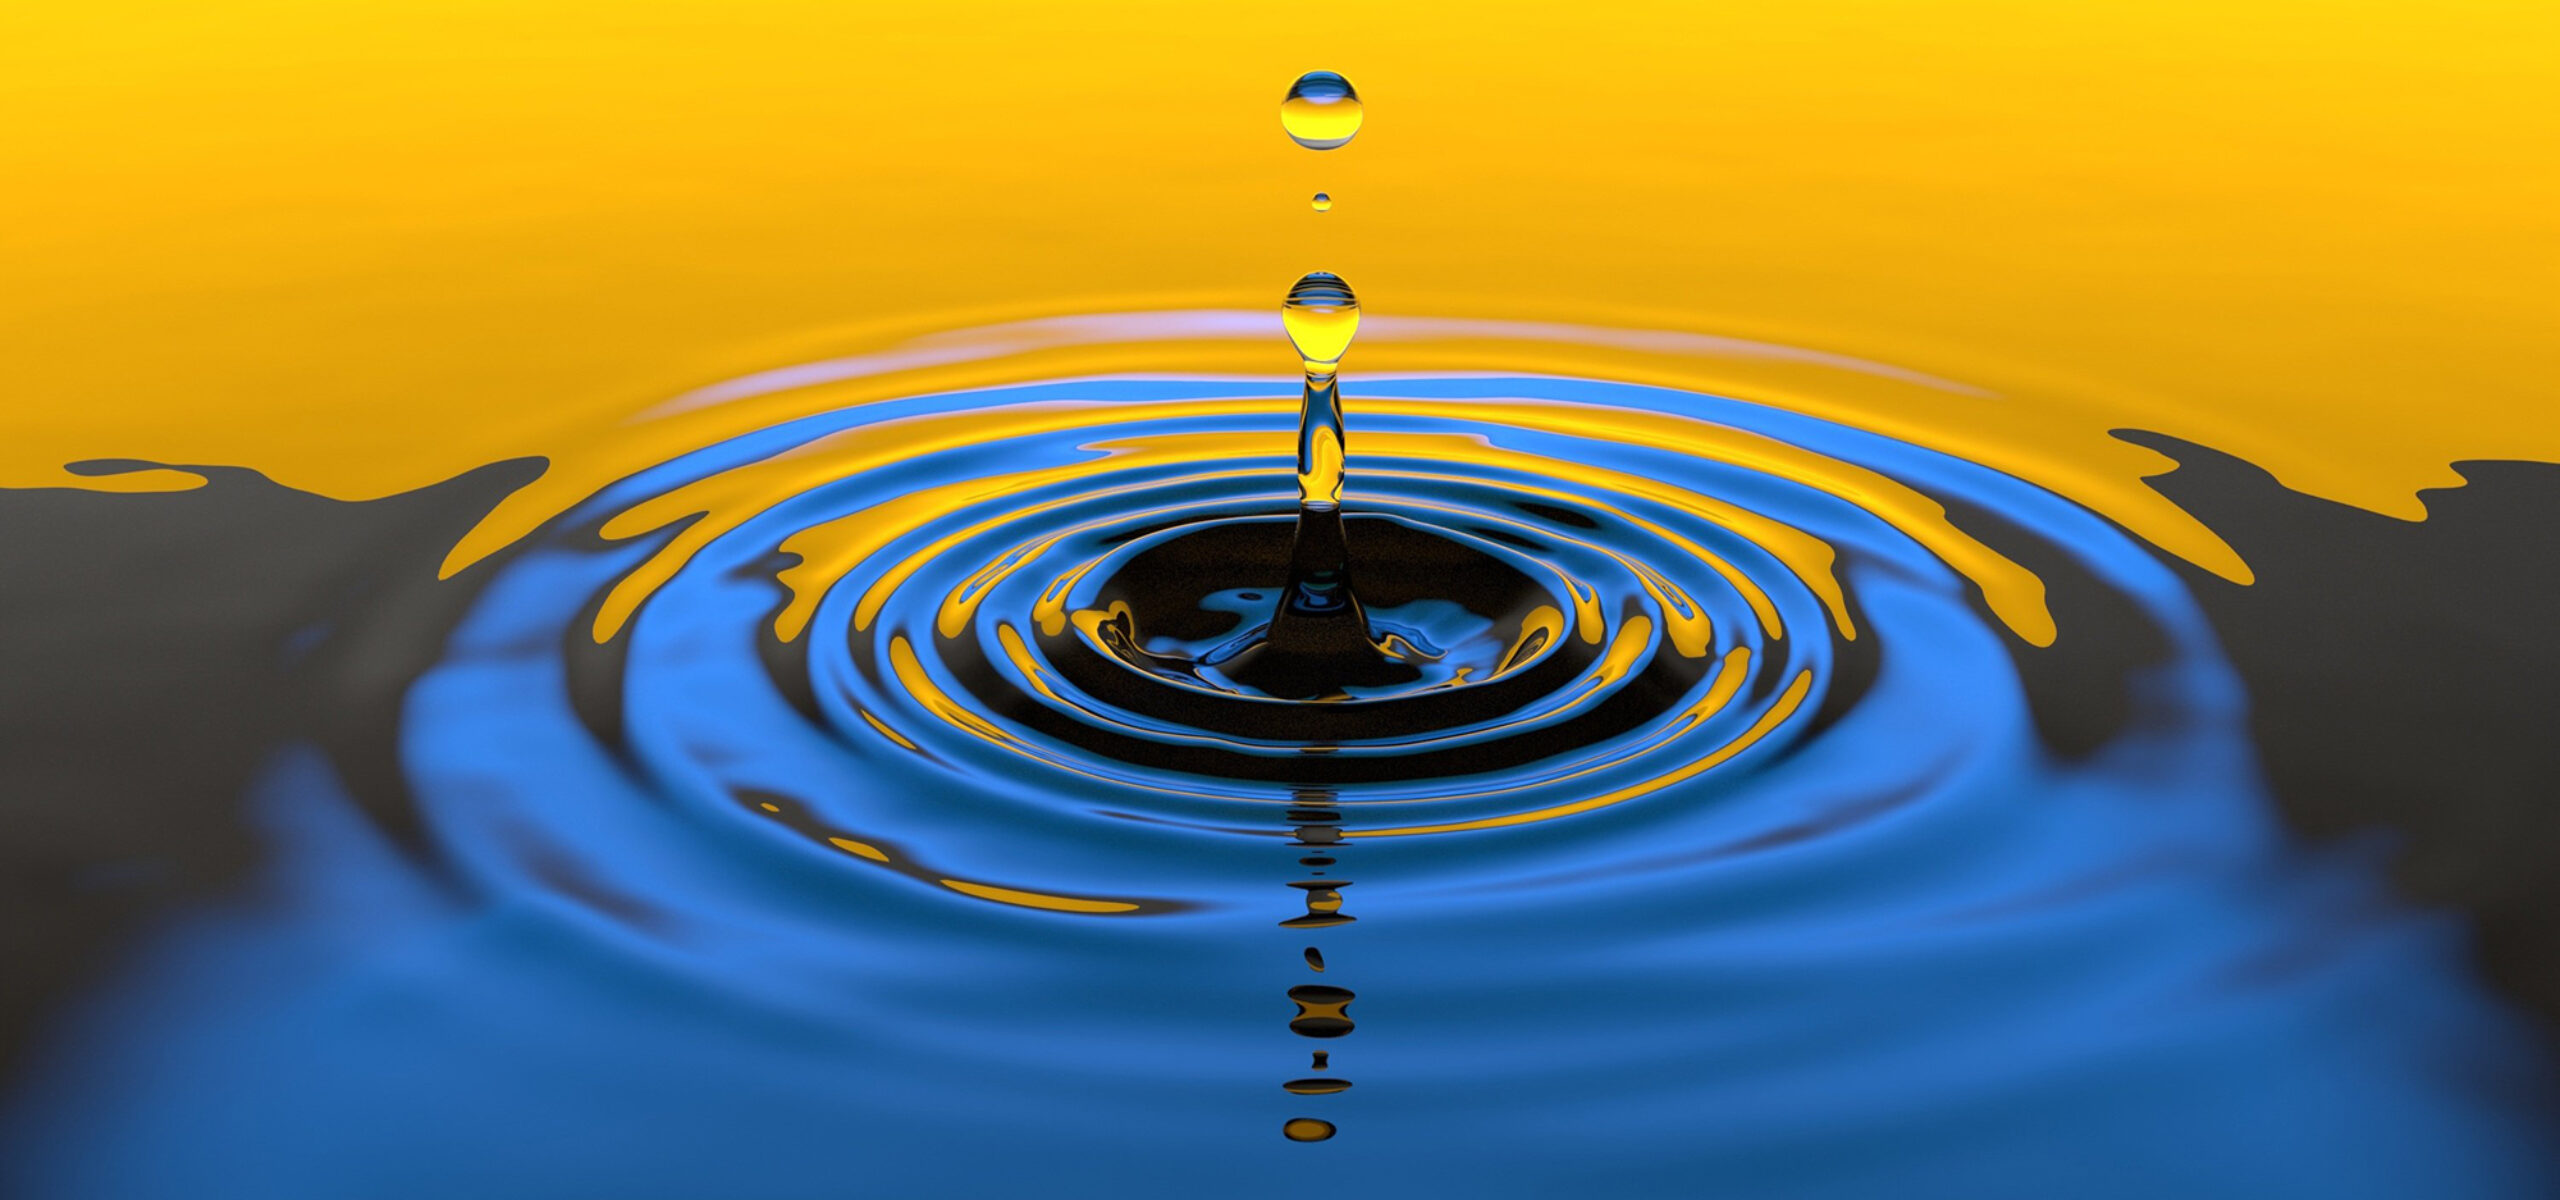 Drop of water causing ripples in water